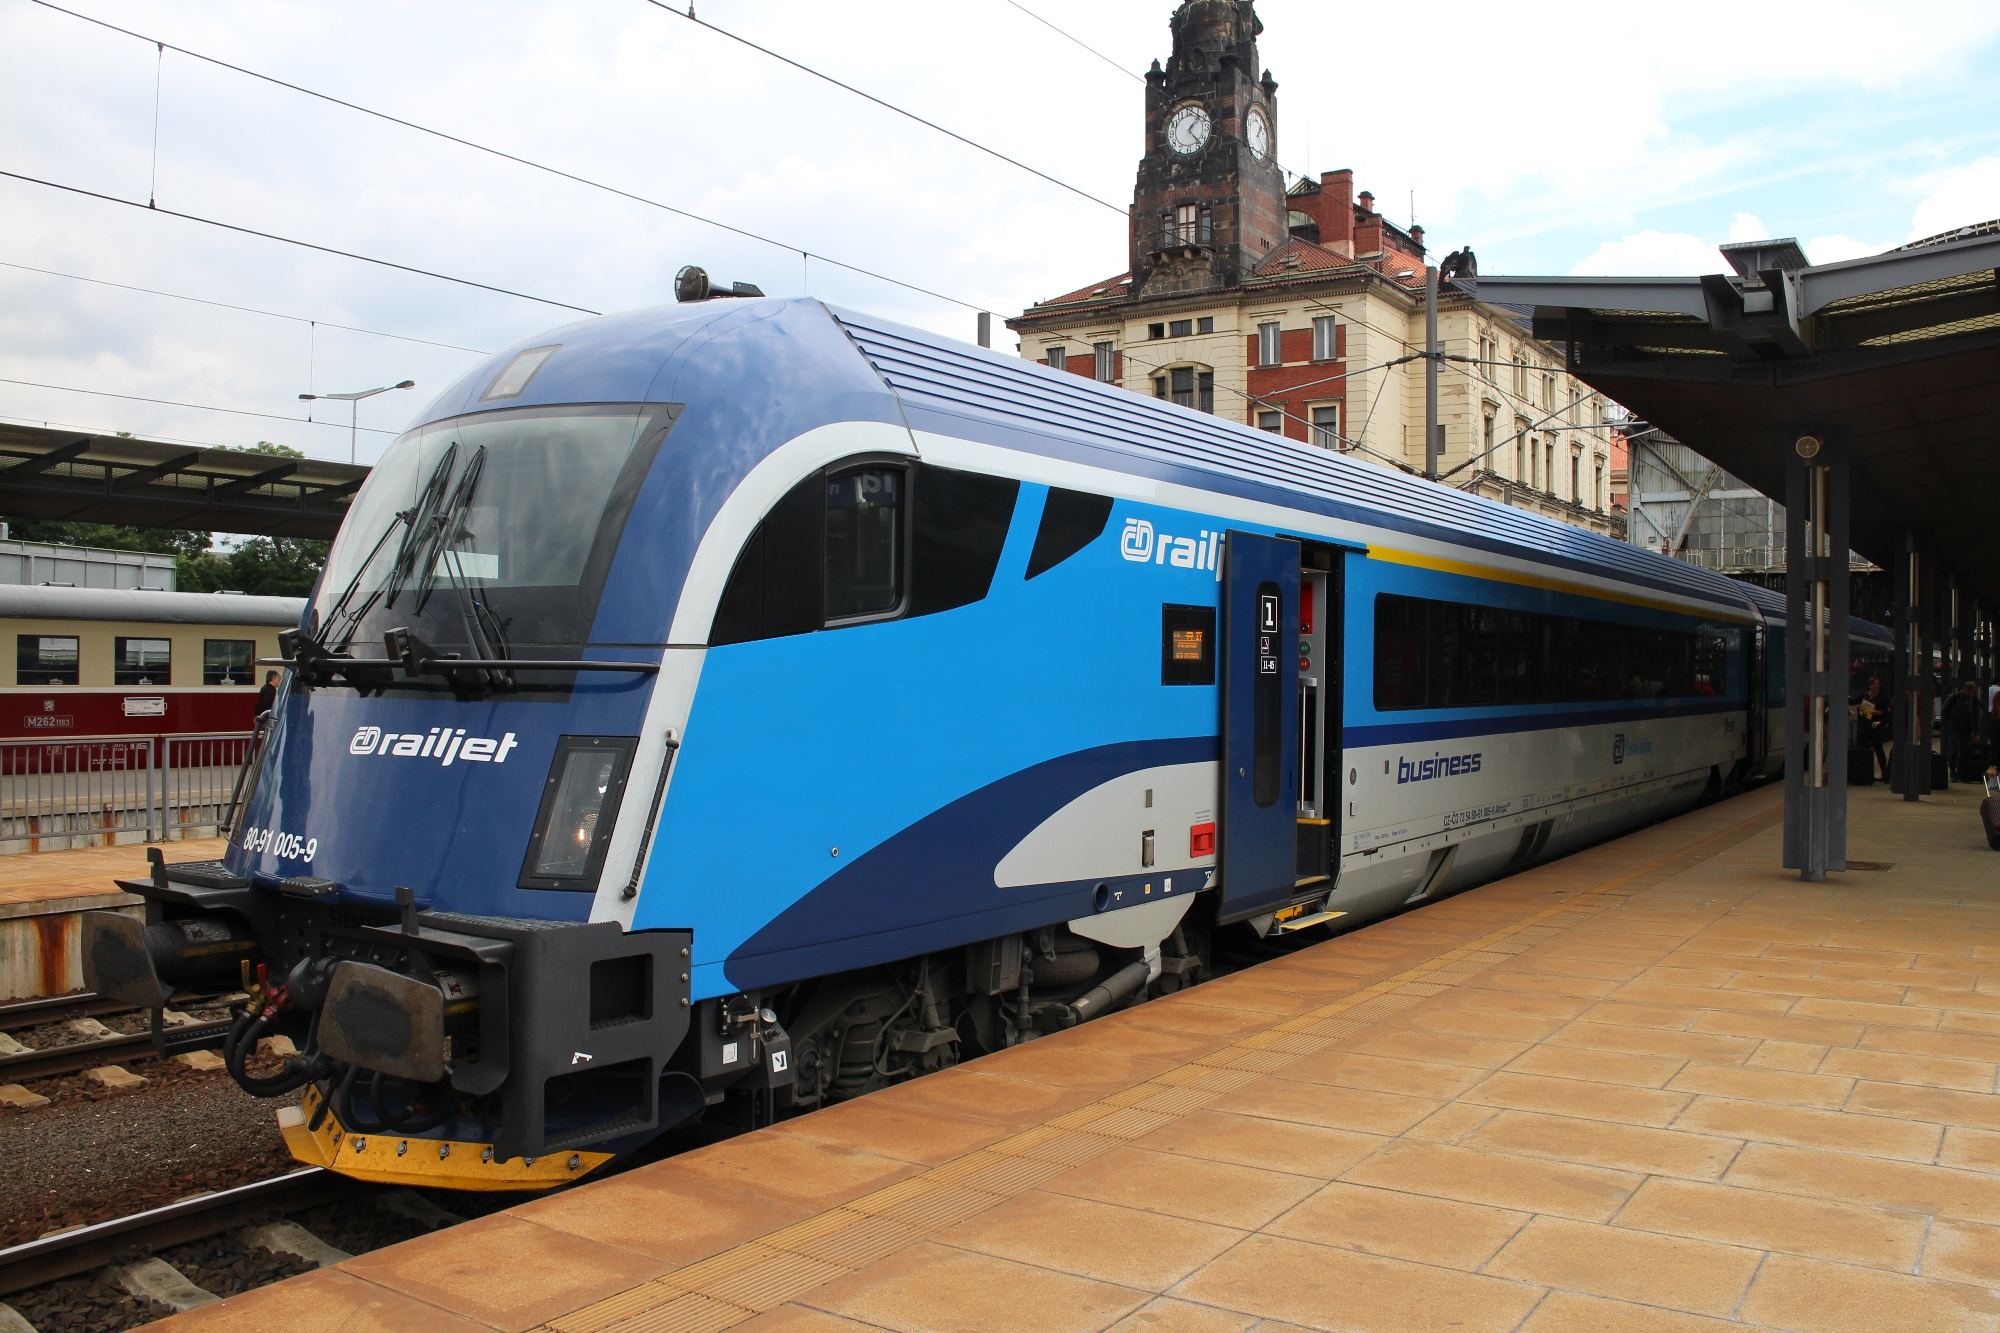 Railjet Train at Prague Station